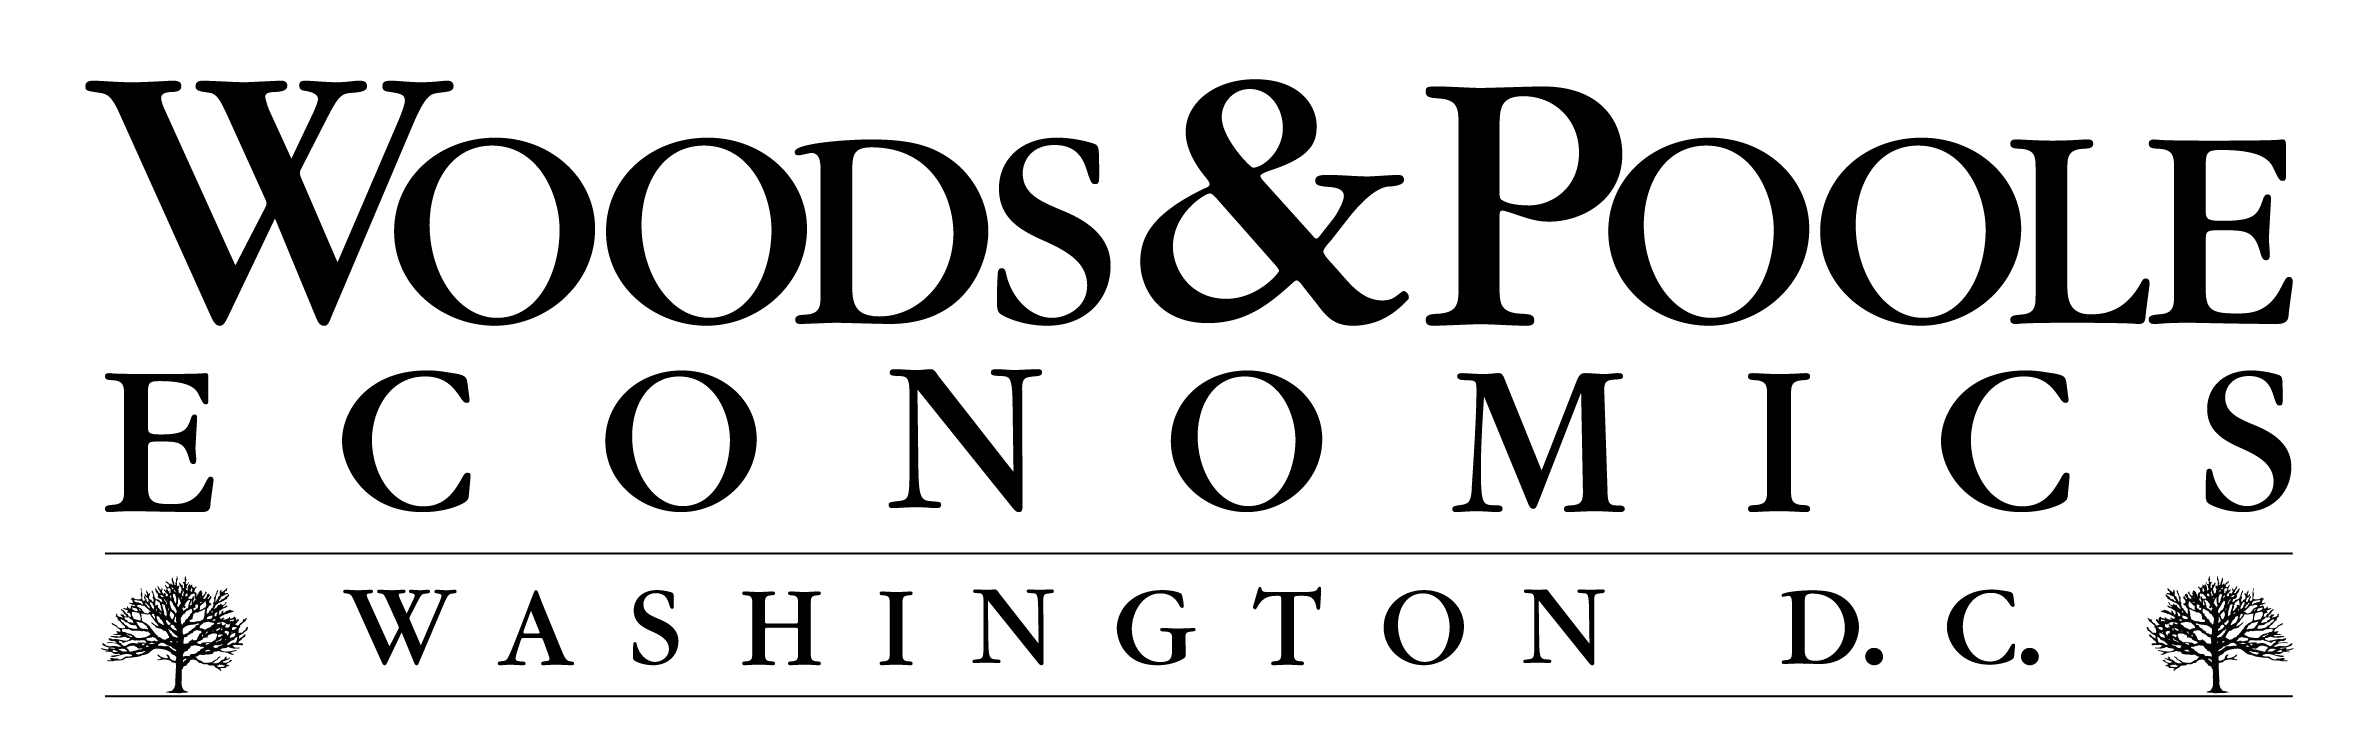 Data Pamphlet – CAMBRIDGE-NEWTON-FRAMINGHAM, MA (MDIV, FIPS 15764) | Woods & Poole Economics, Inc